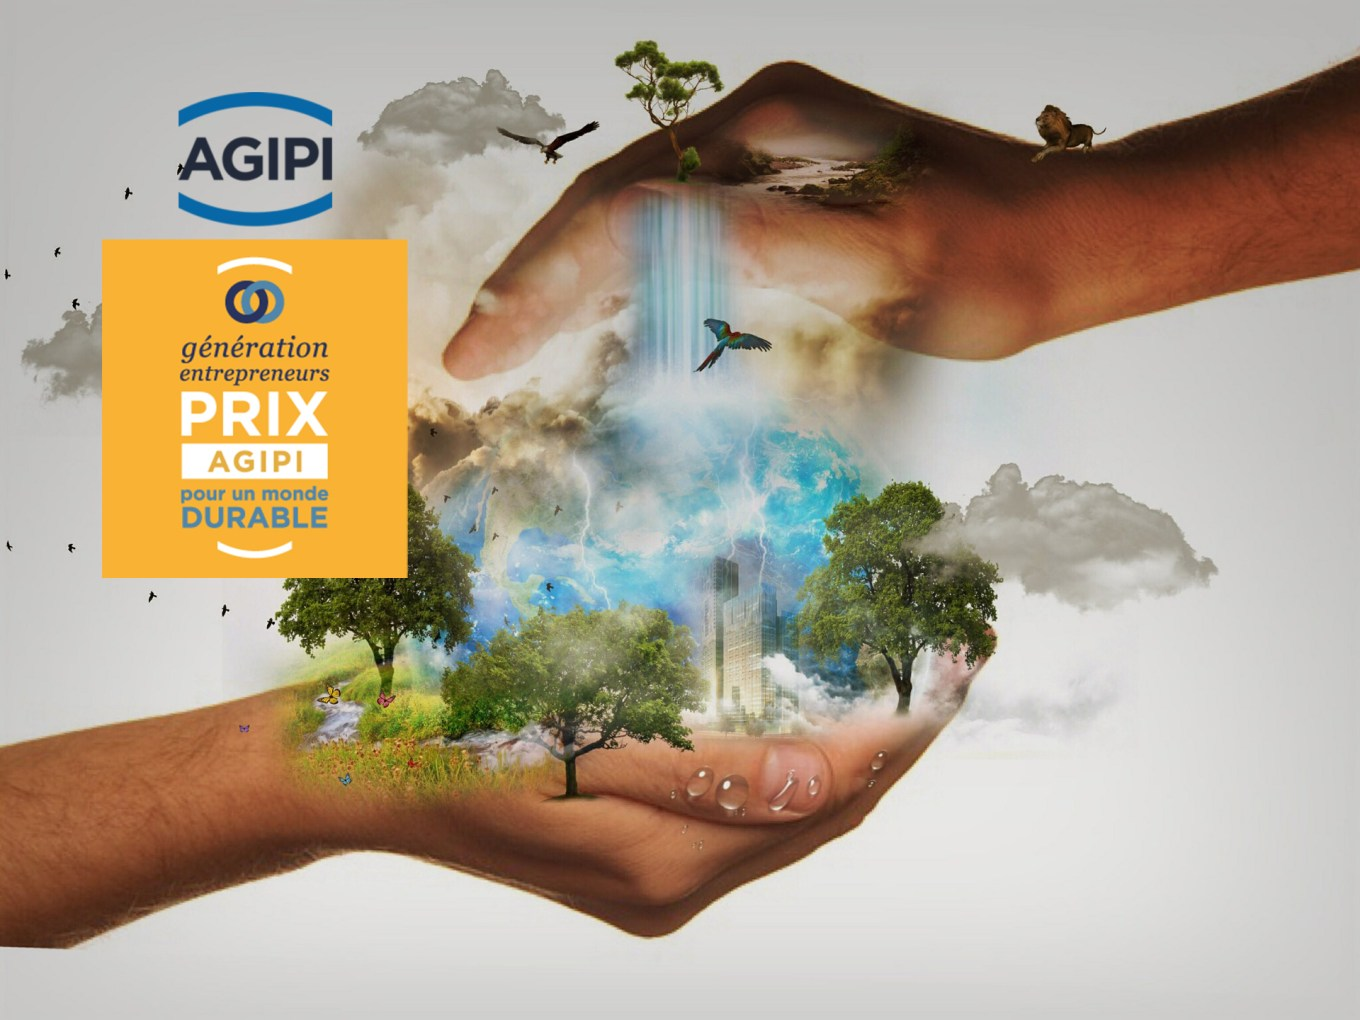 AGIPI Prize for a sustainable world